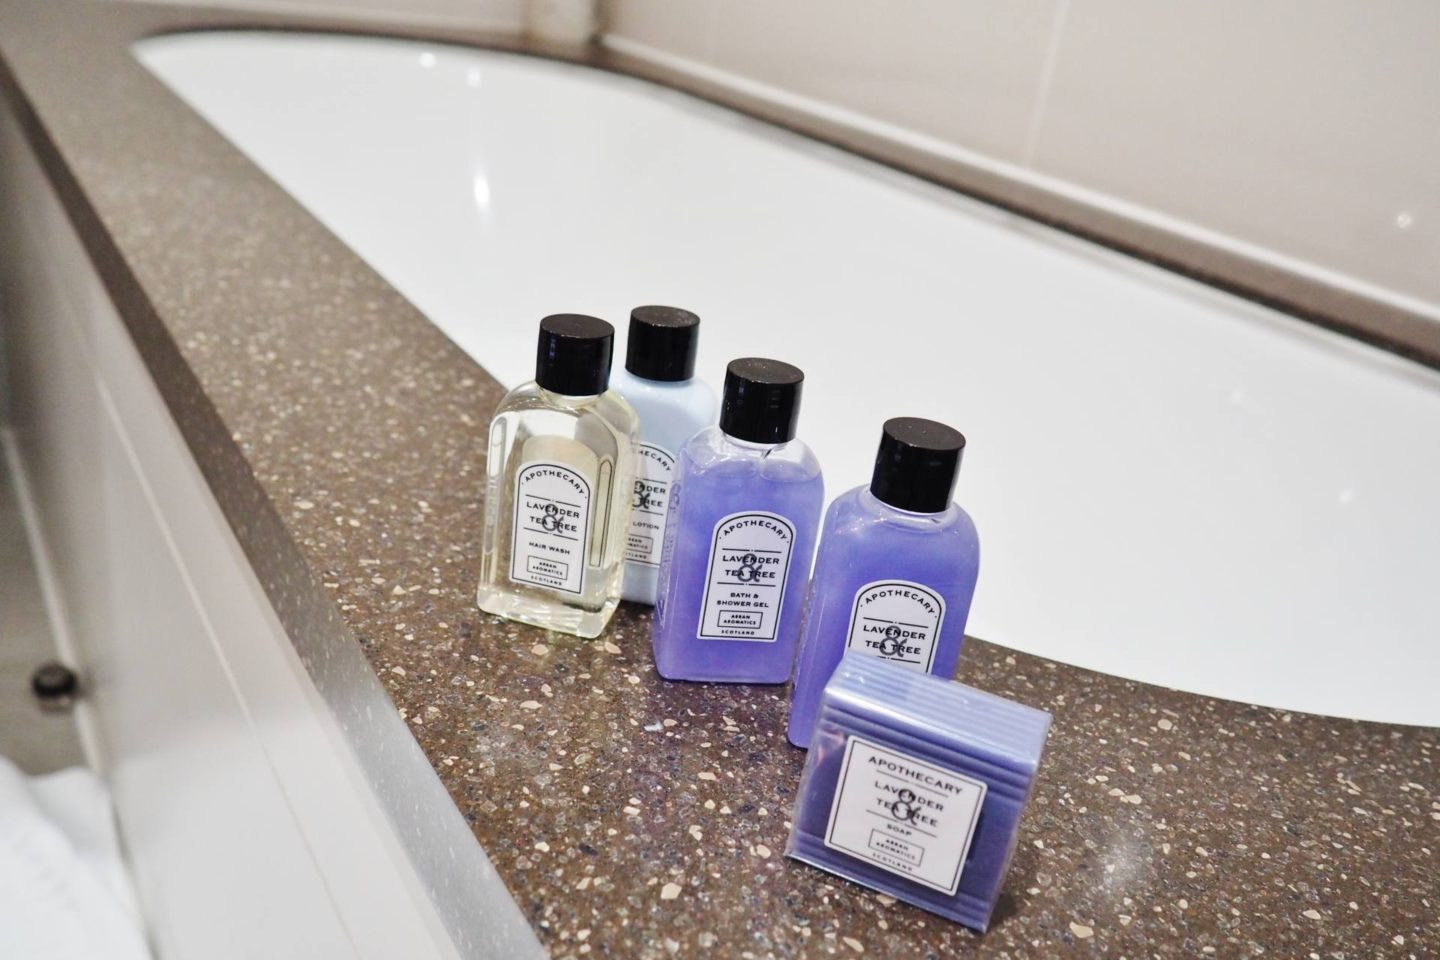 Emma Victoria Stokes Macdonald Windsor Hotel Executive Suite Blogger Review Bath Products